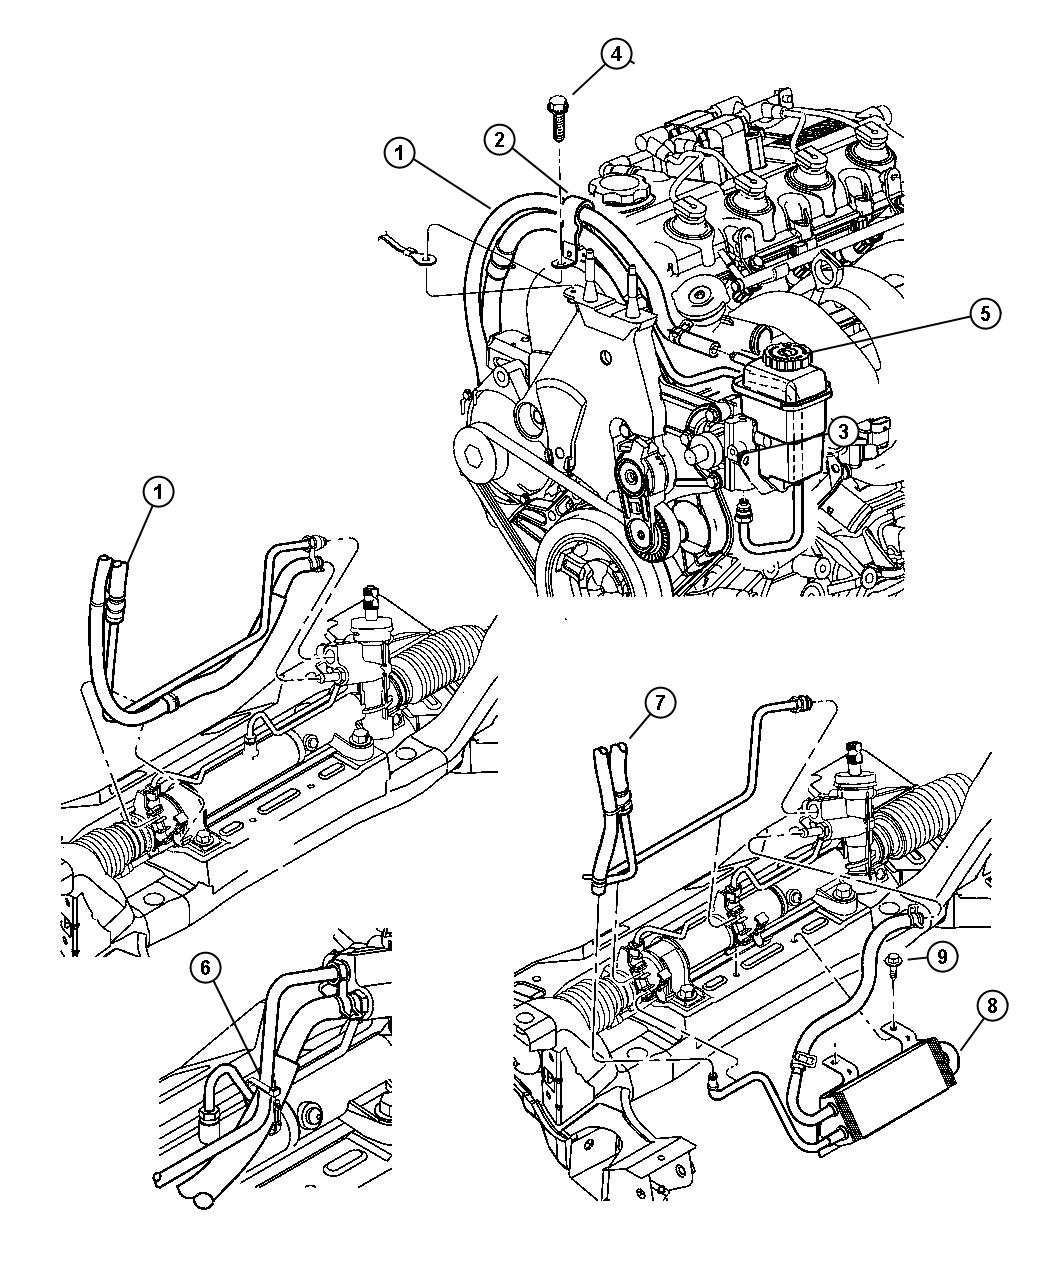 Dodge Neon Power Steering Diagram